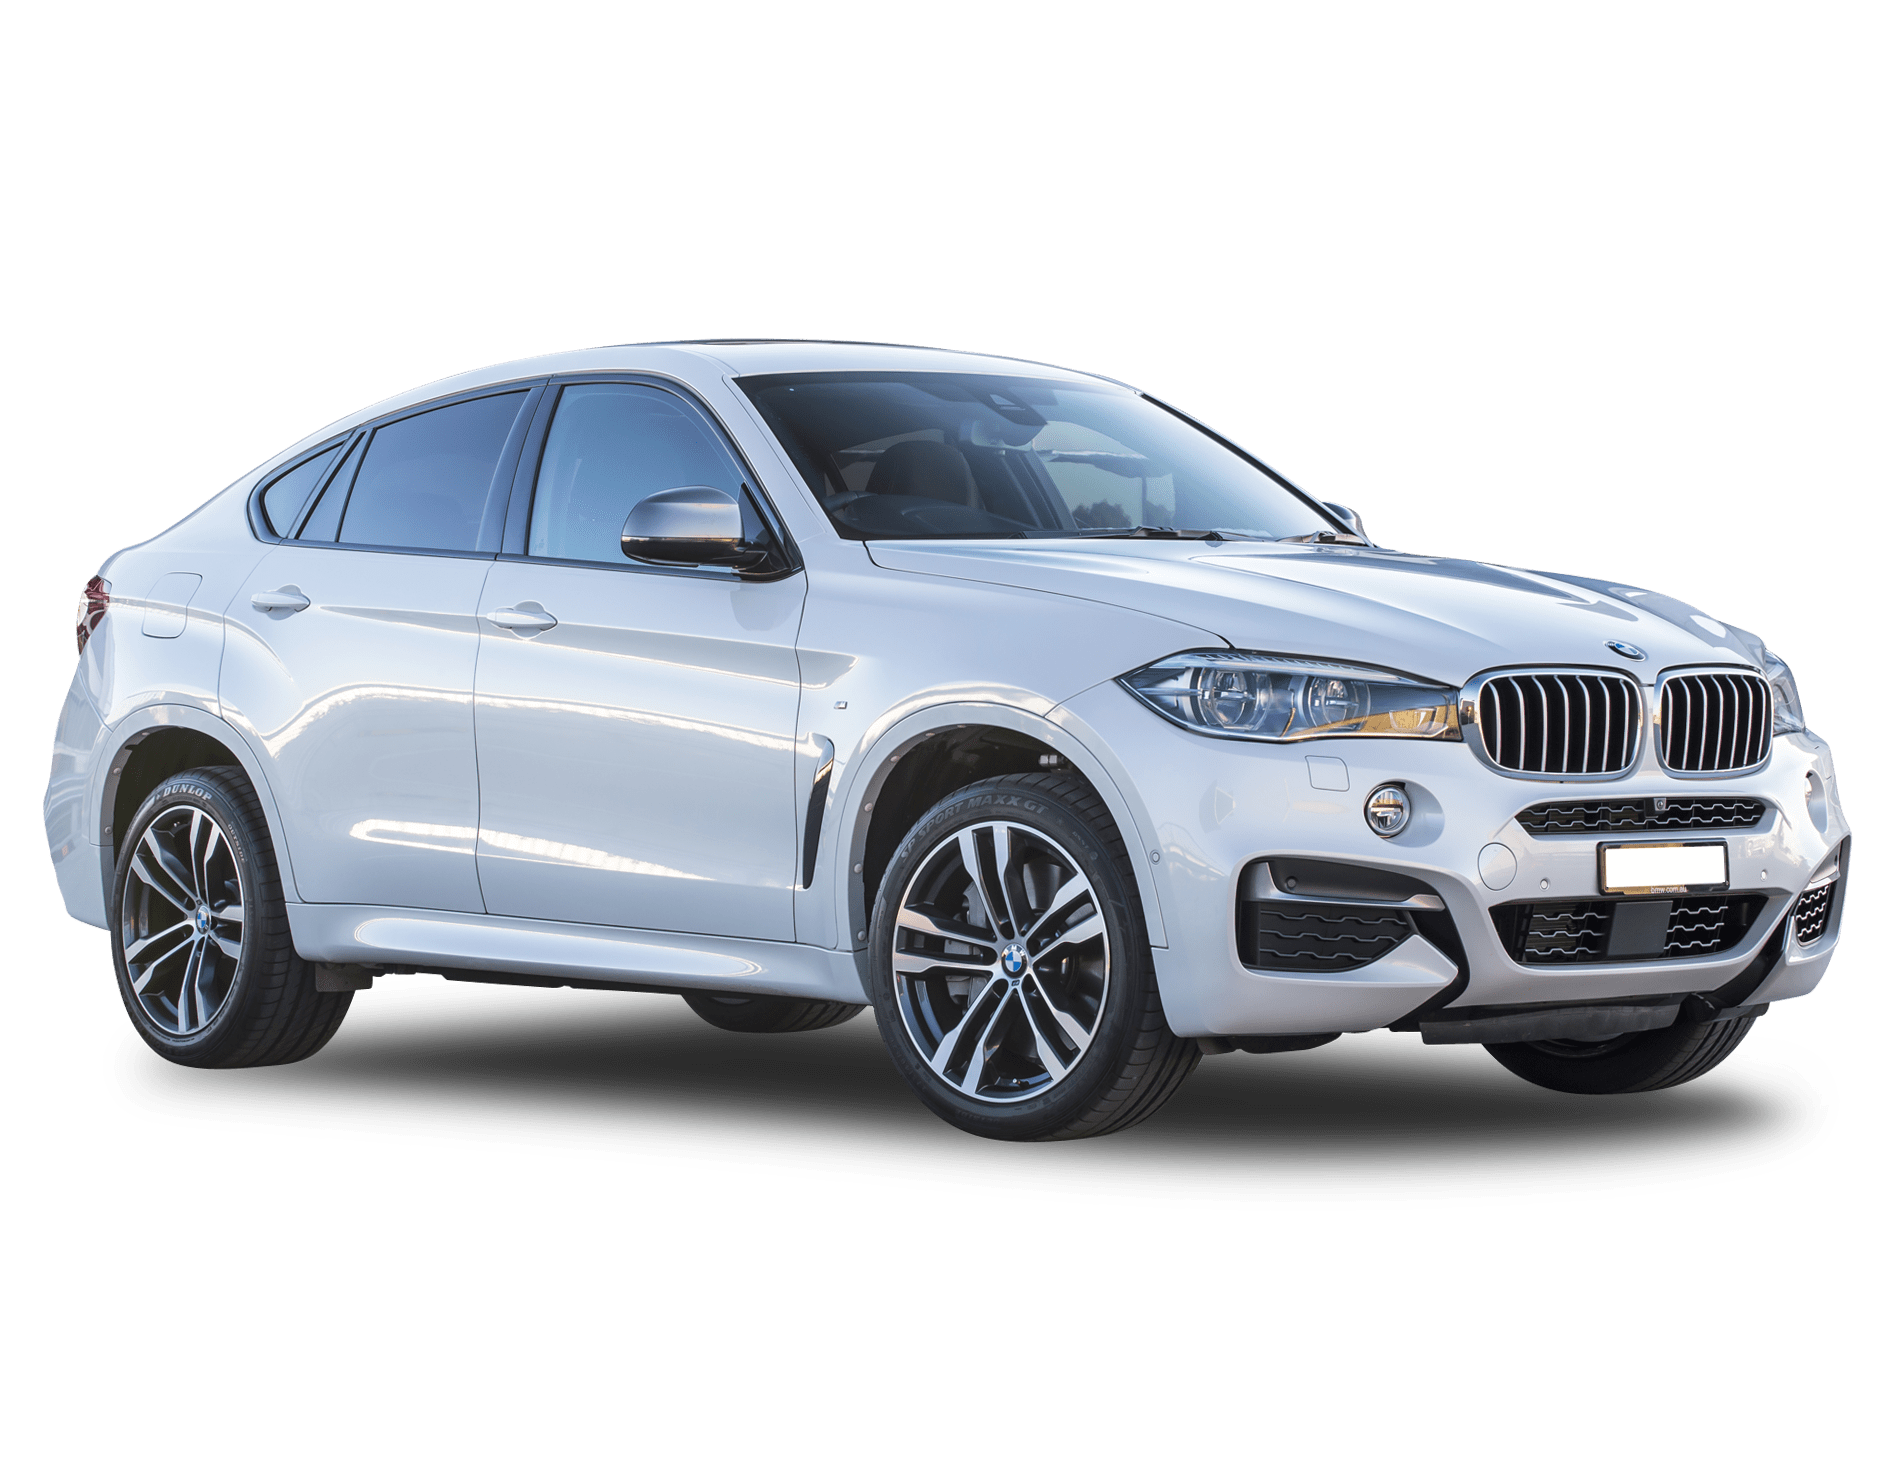 Bmw X6 Review Price For Sale Colours Interior Specs Carsguide